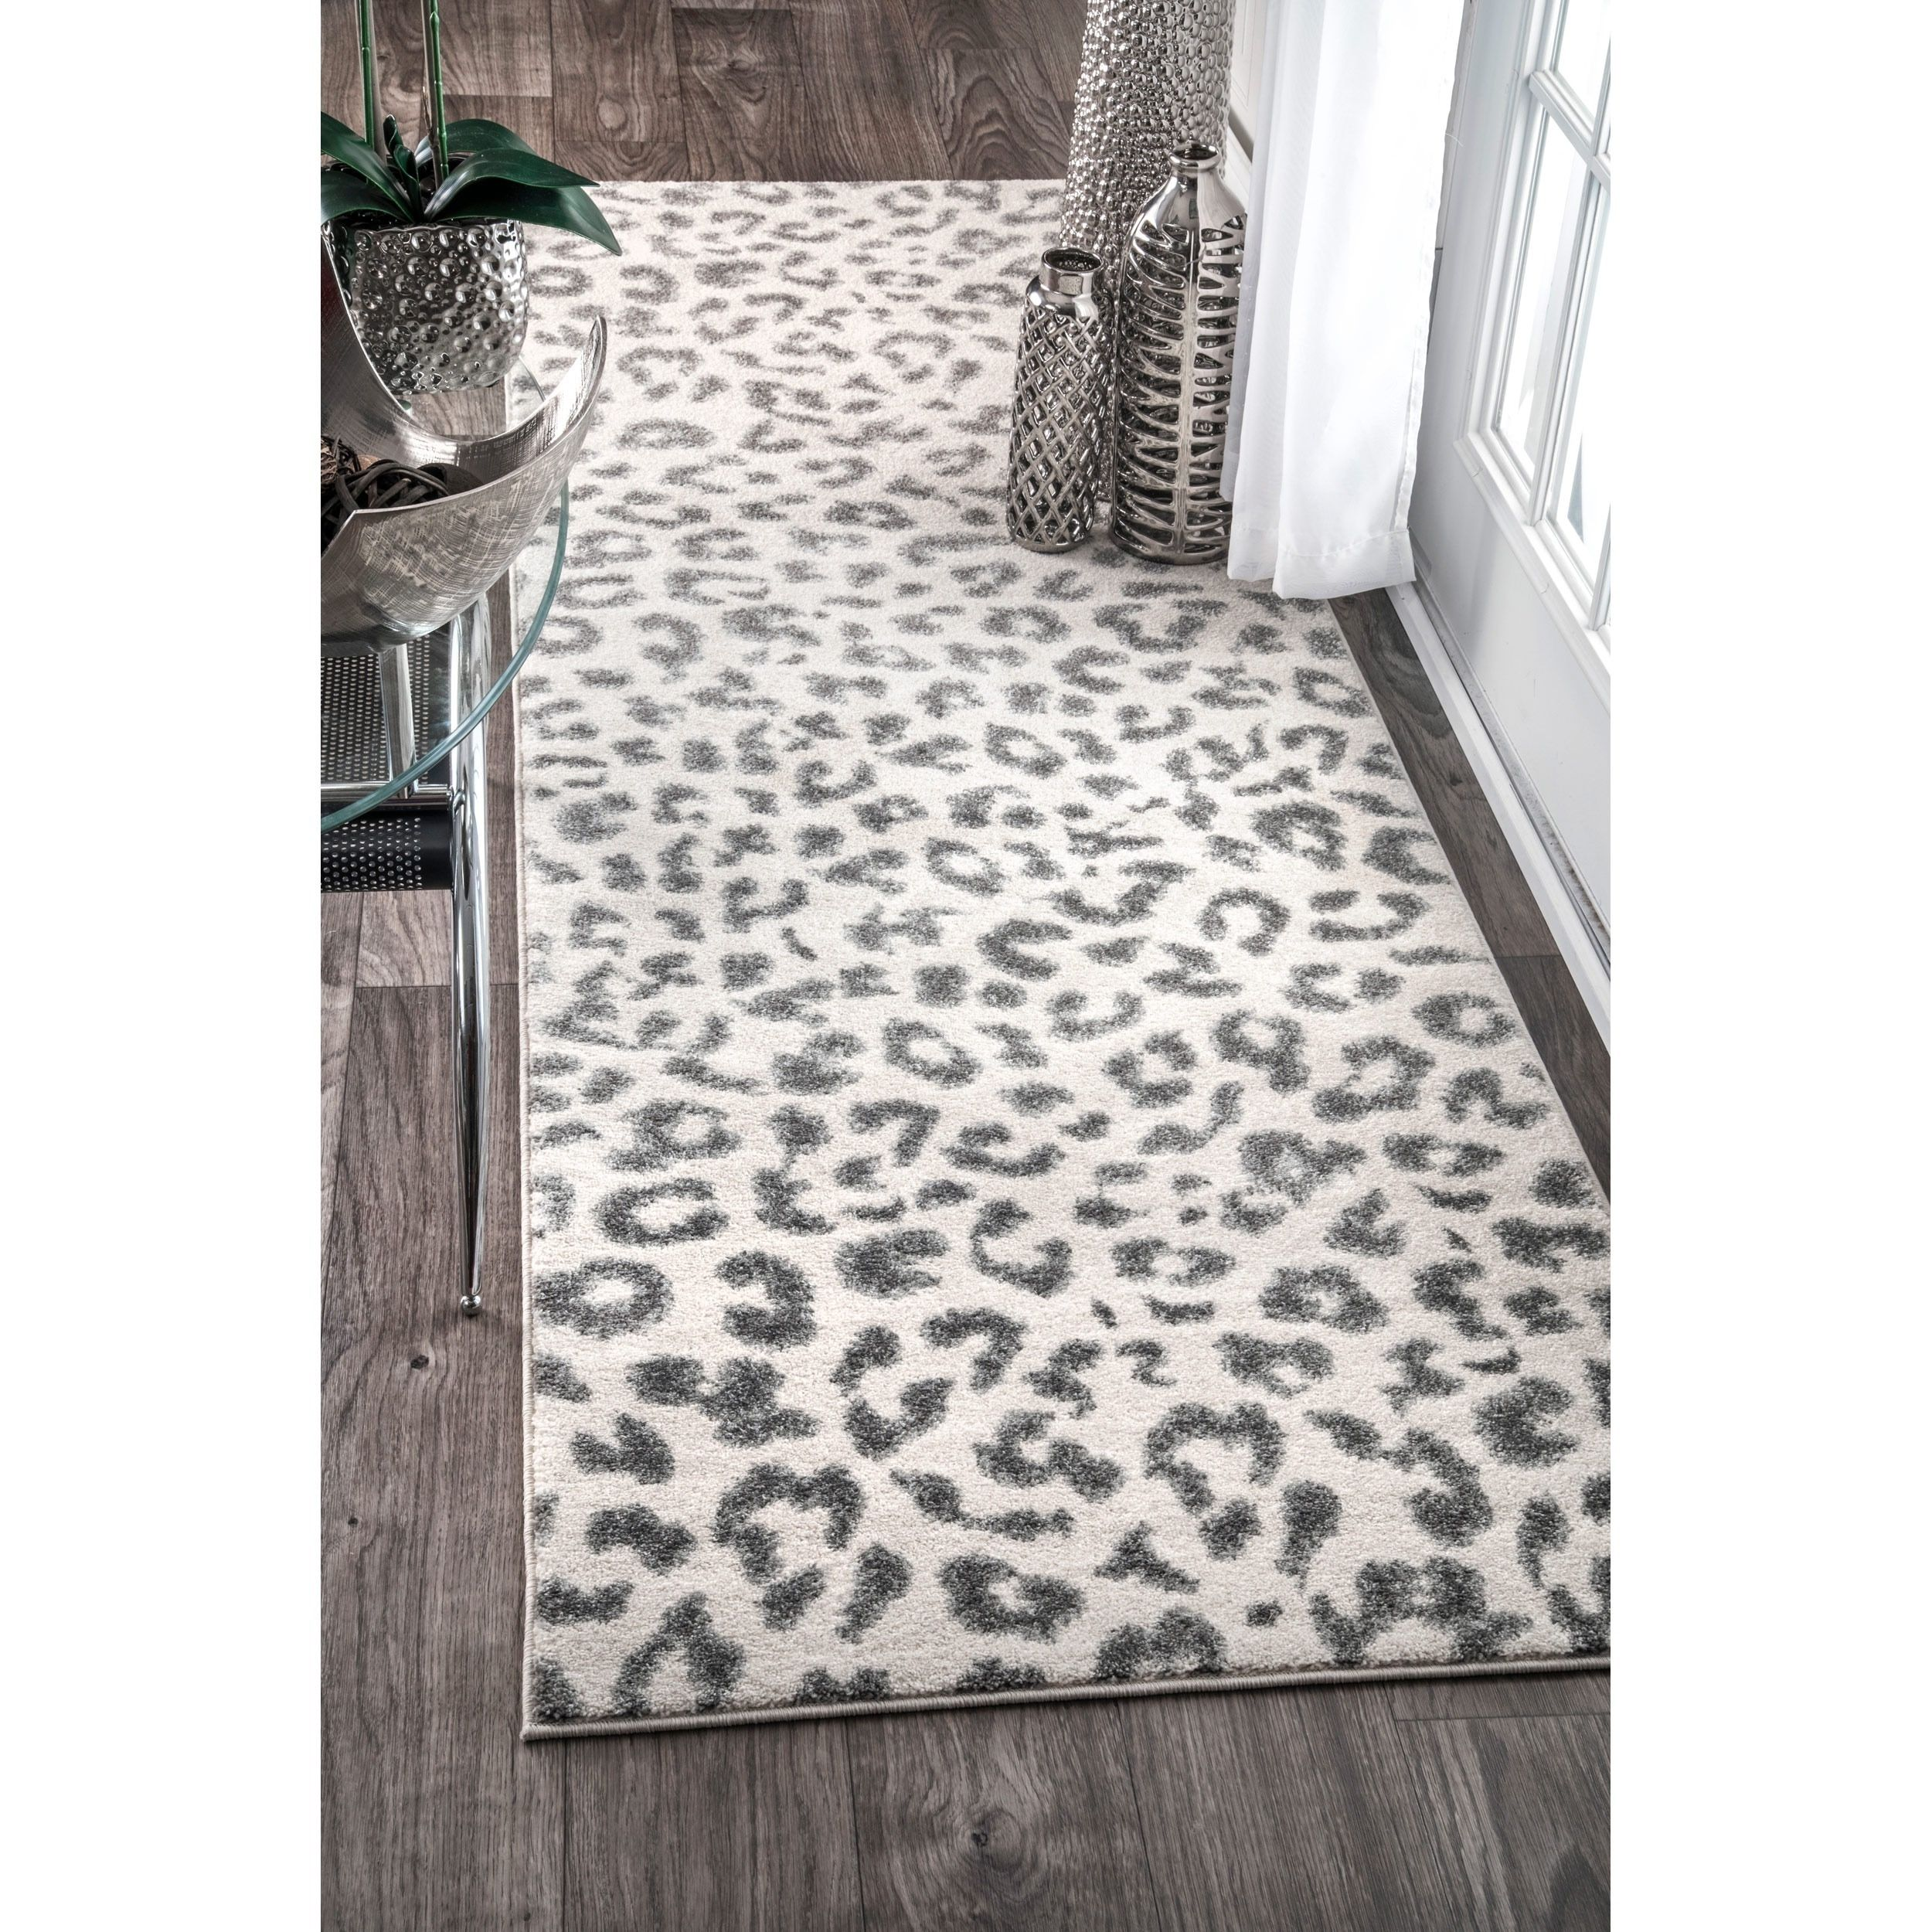 Leopard Spotted Area Rug